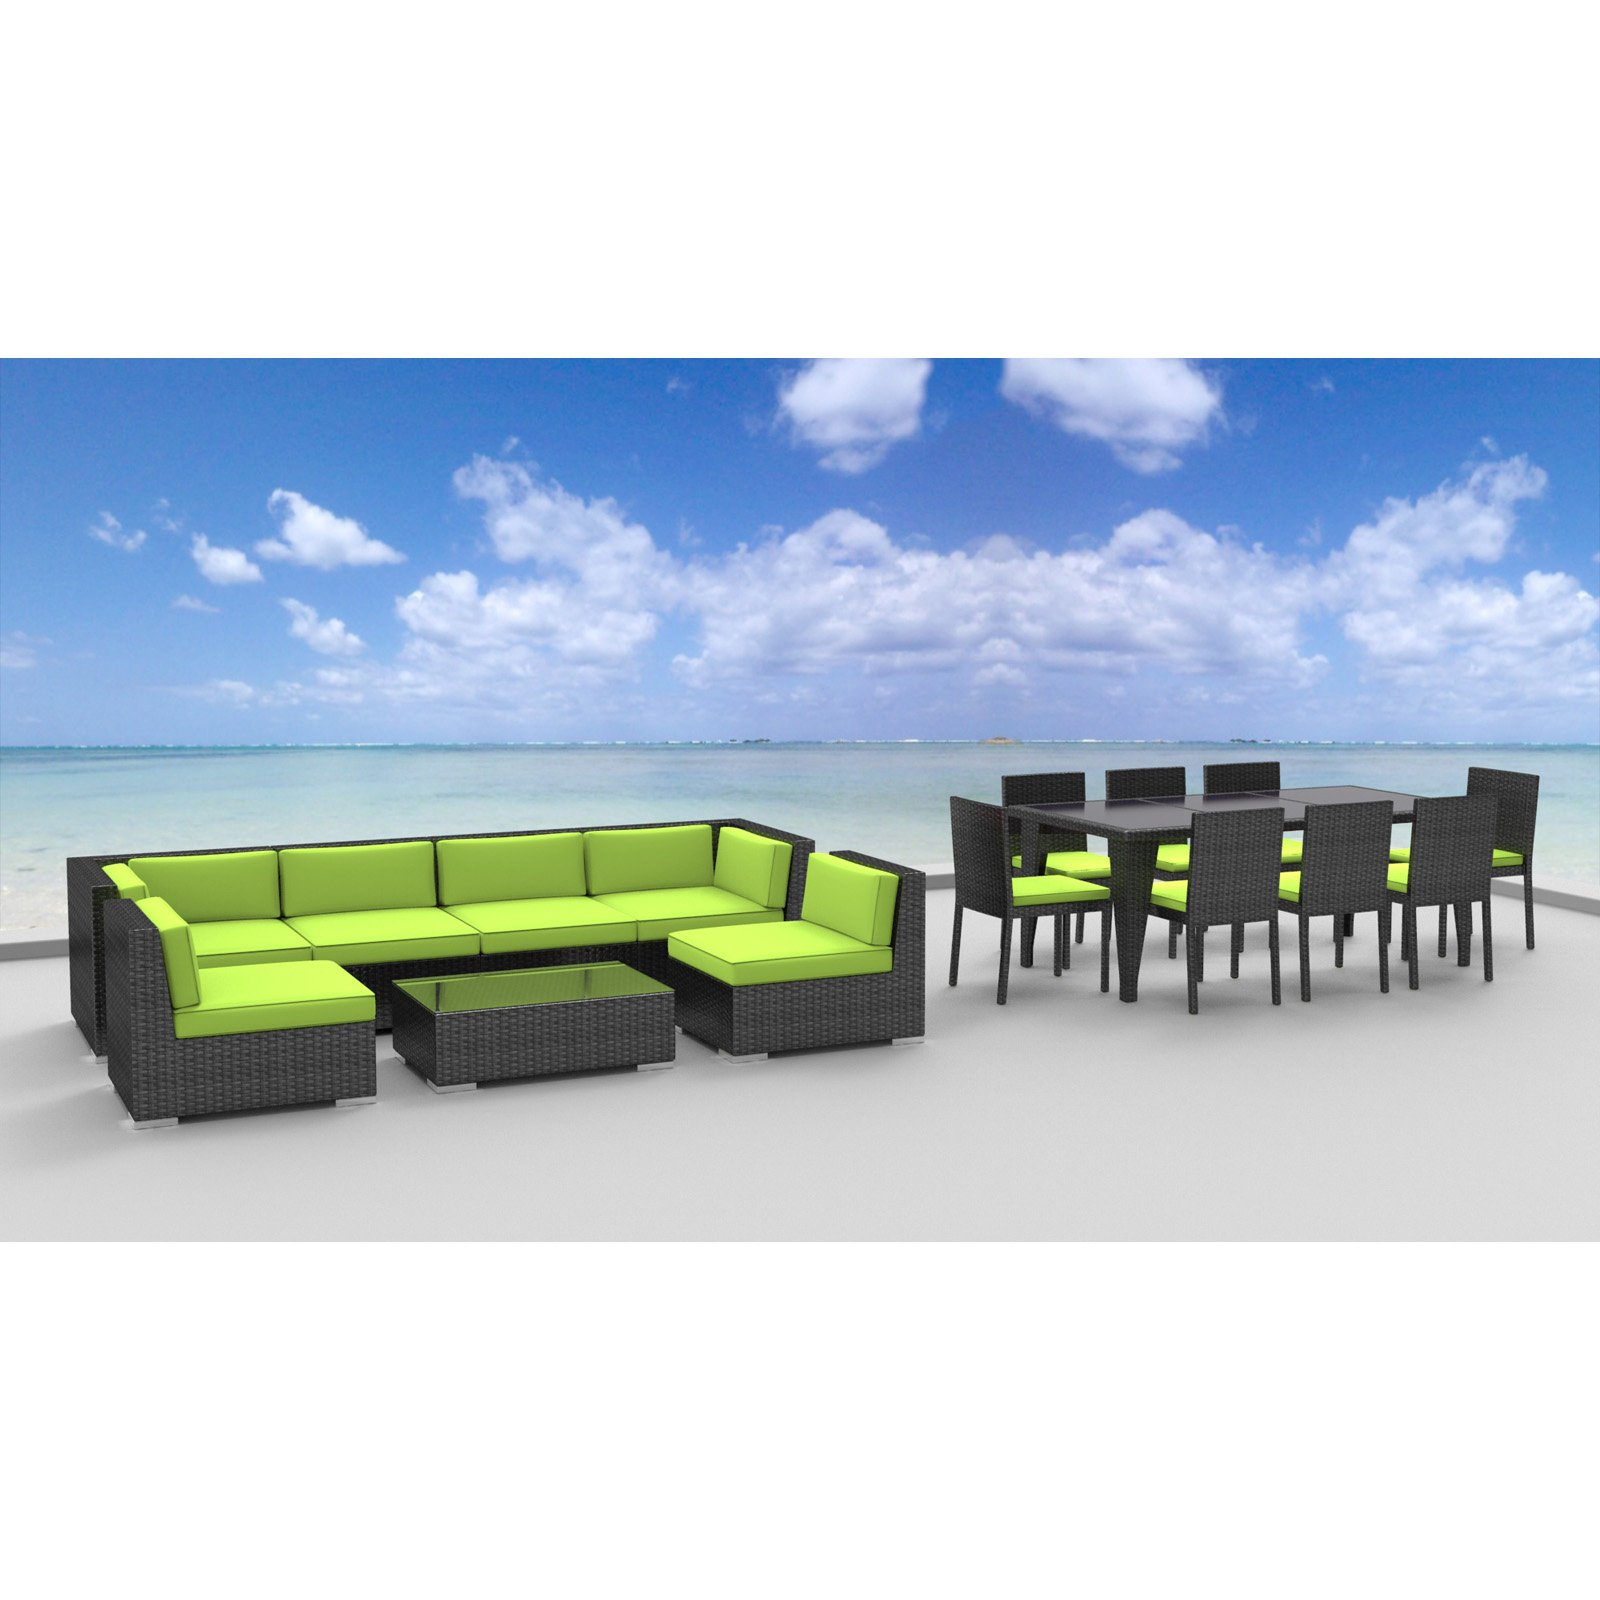 Urban Furnishing 16 Piece Outdoor Dining and Patio Furniture Set